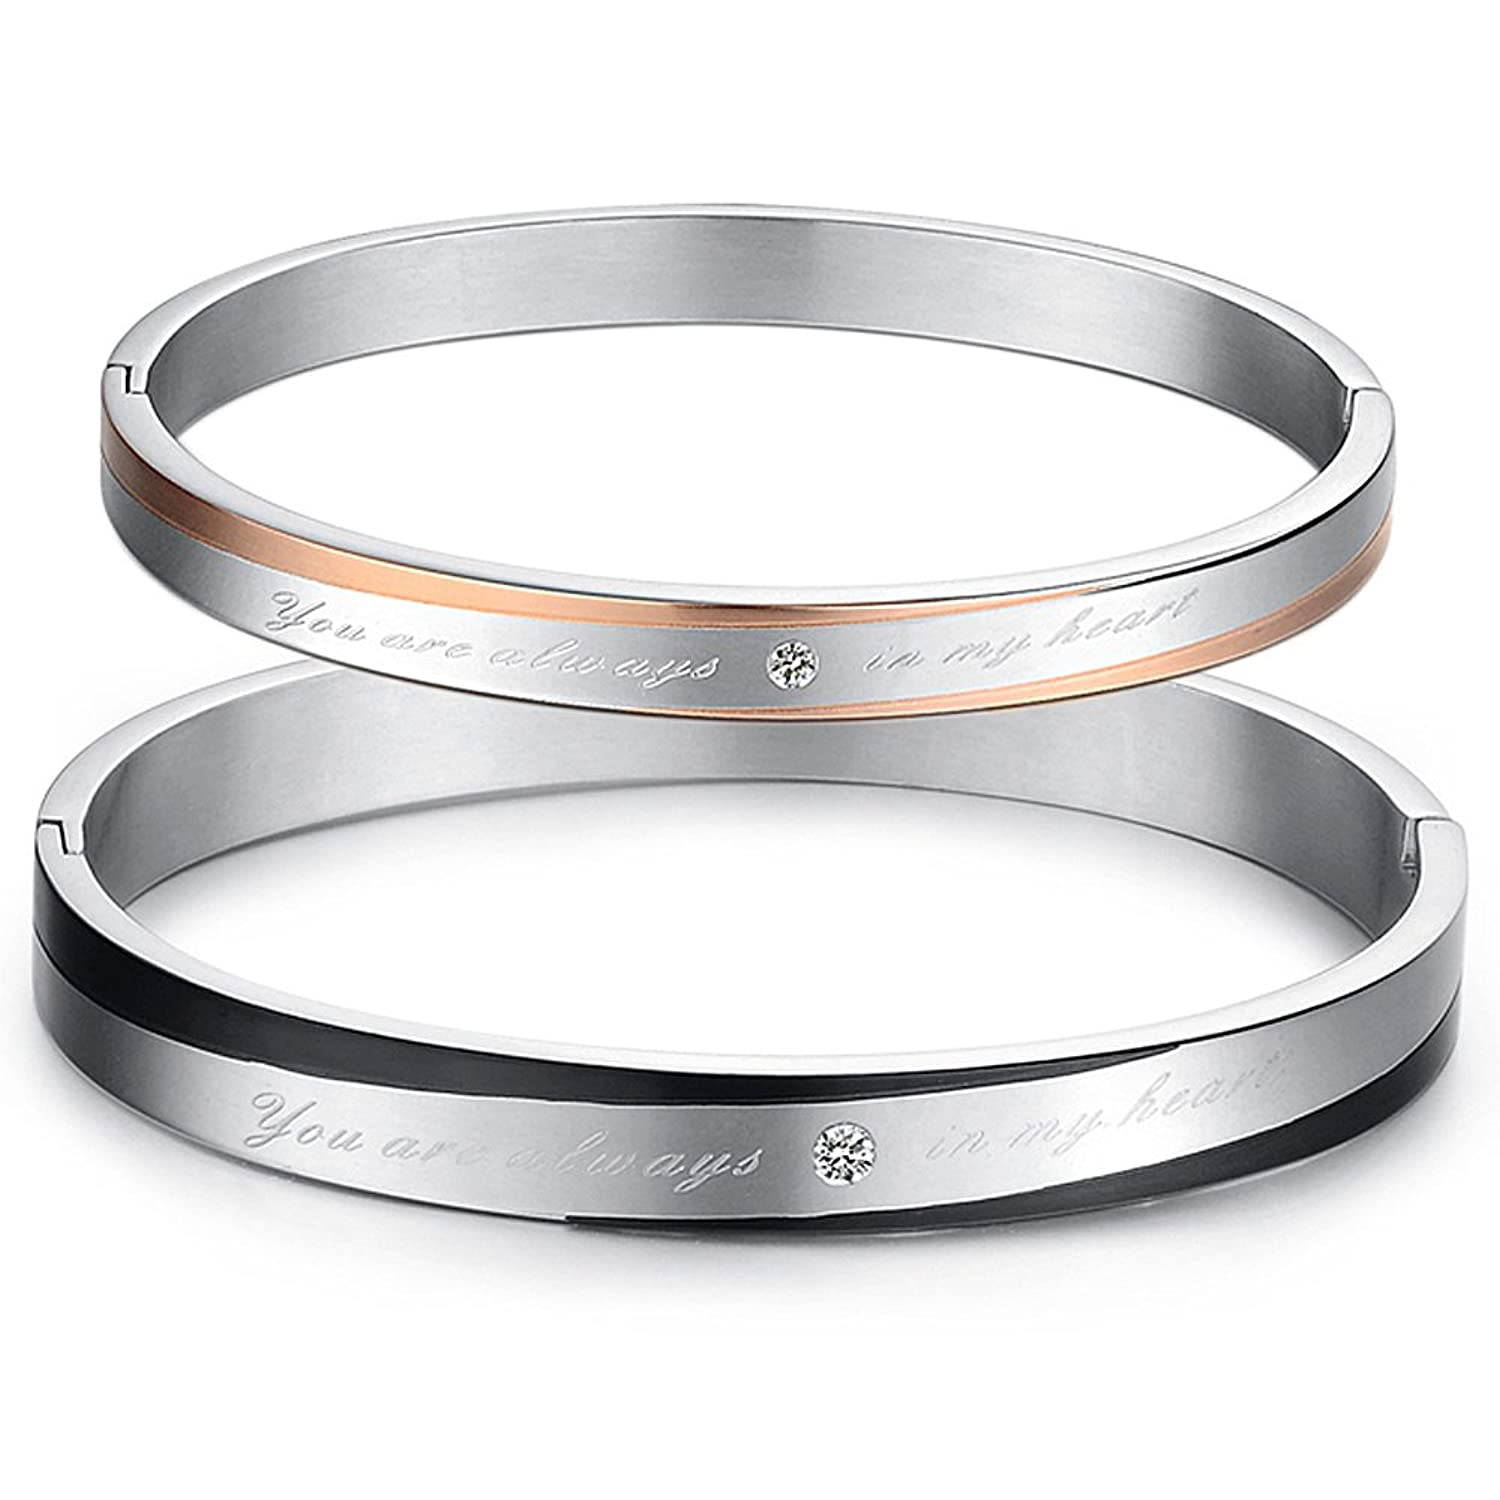 a bangle titanium matching style korean gift box com in steel amazon stainless simple love hers dp set or his anti couple bracelet fatigue